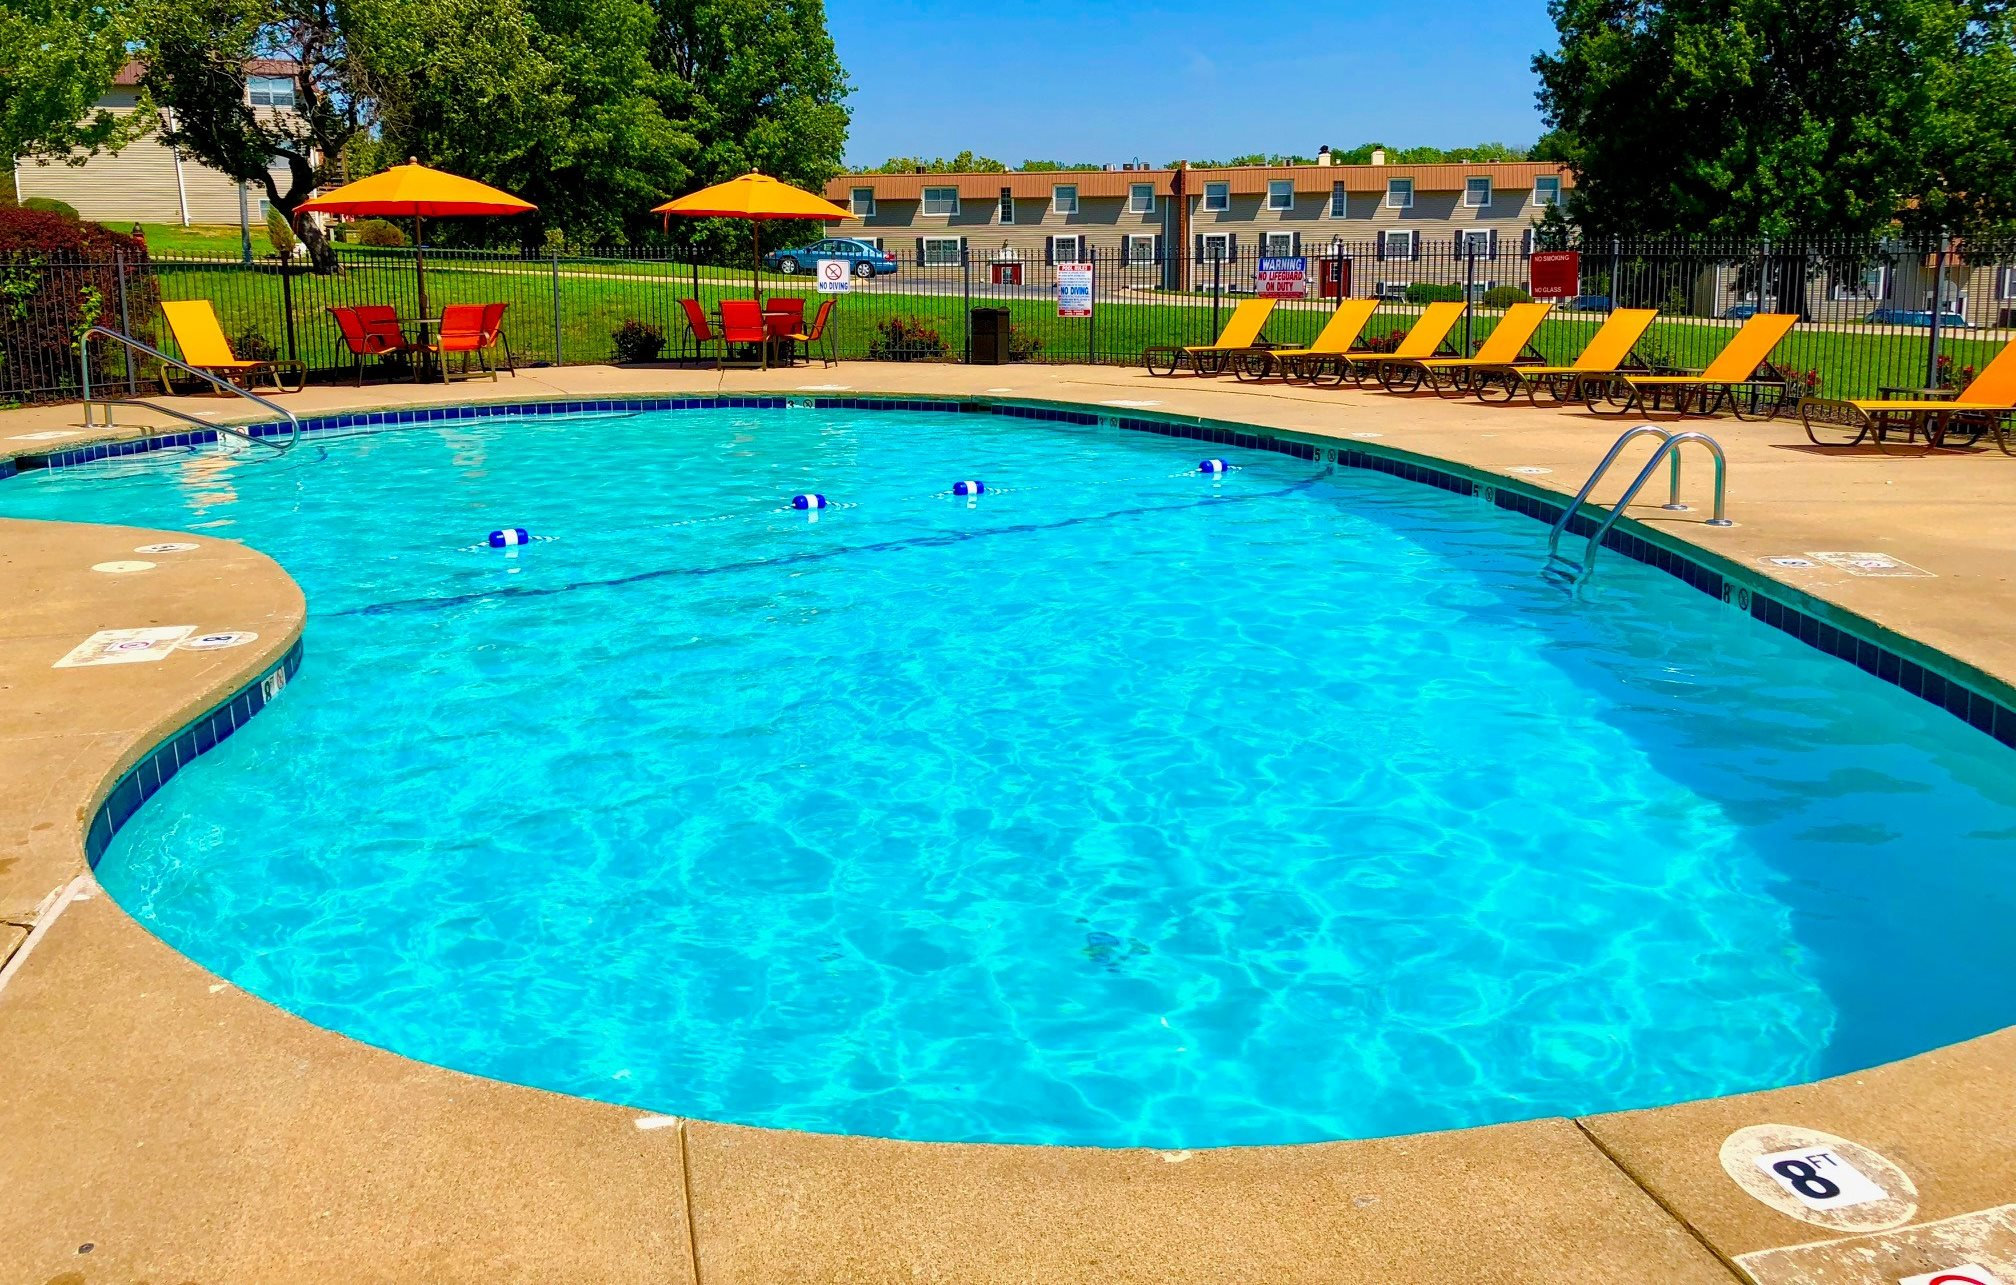 Outdoor seasonal pool at Regency North Apartments in North Kansas City, MO